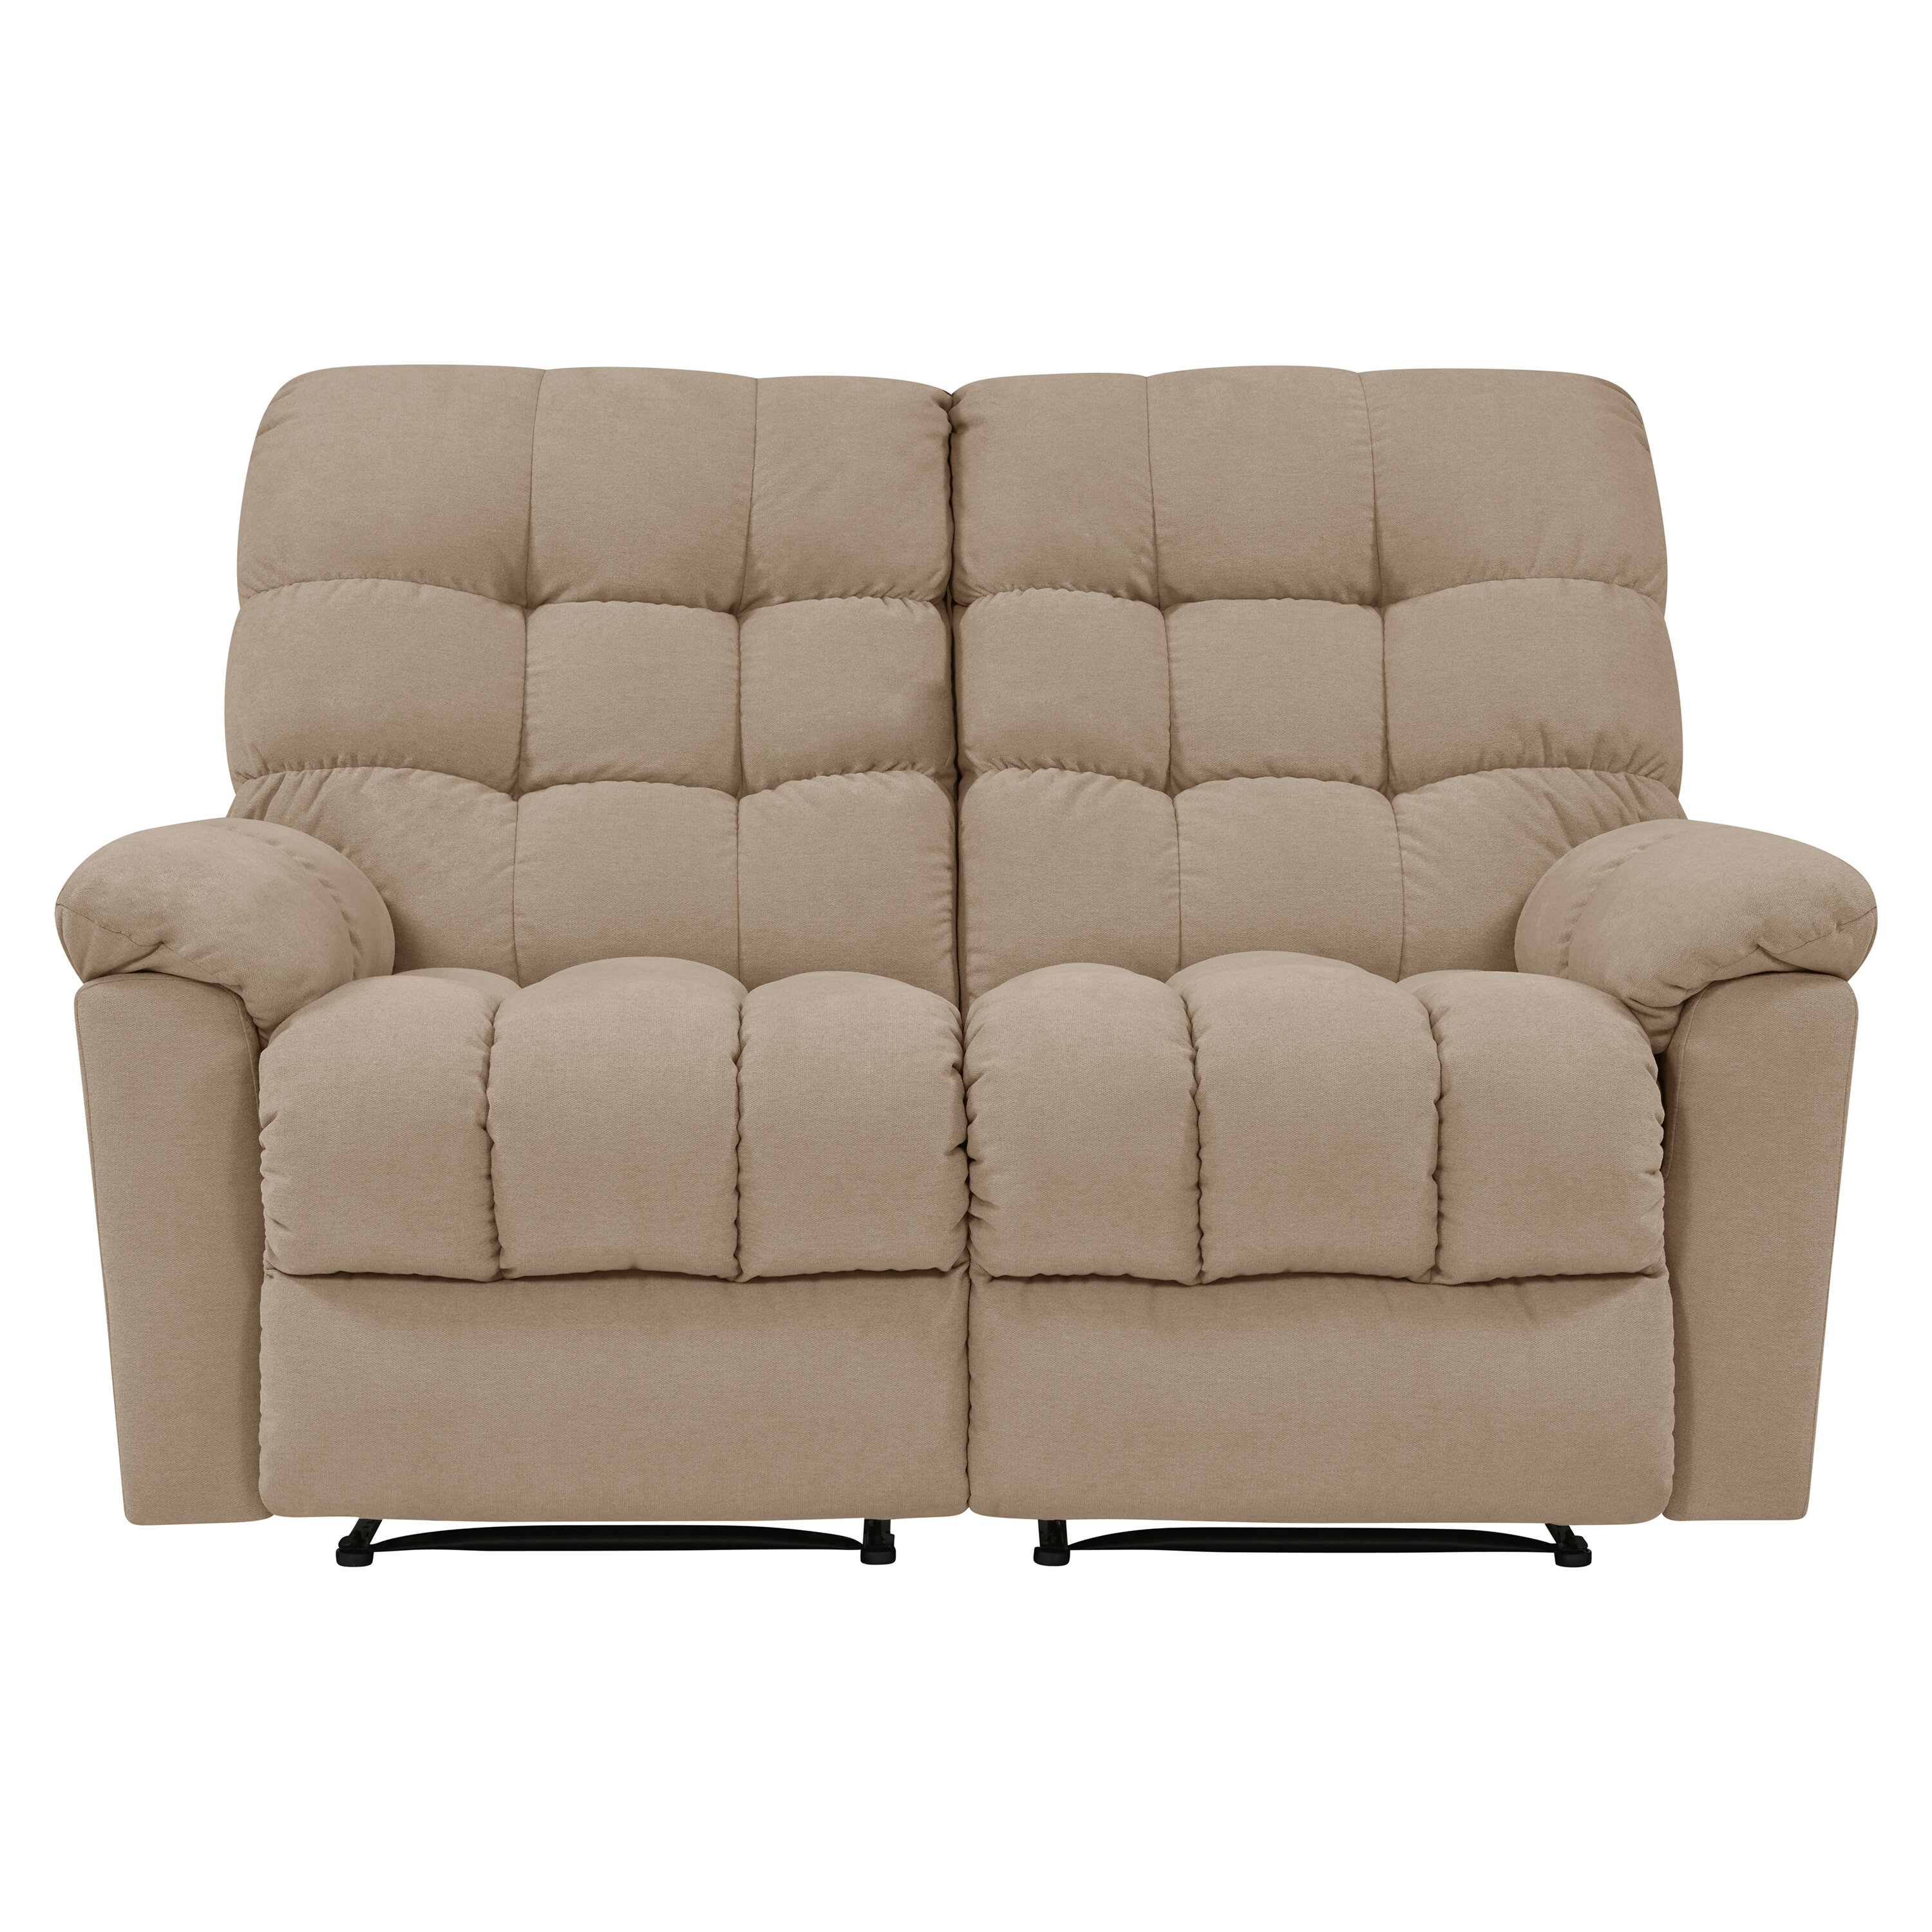 Pleasing Maxfield Tufted Reclining Loveseat Squirreltailoven Fun Painted Chair Ideas Images Squirreltailovenorg